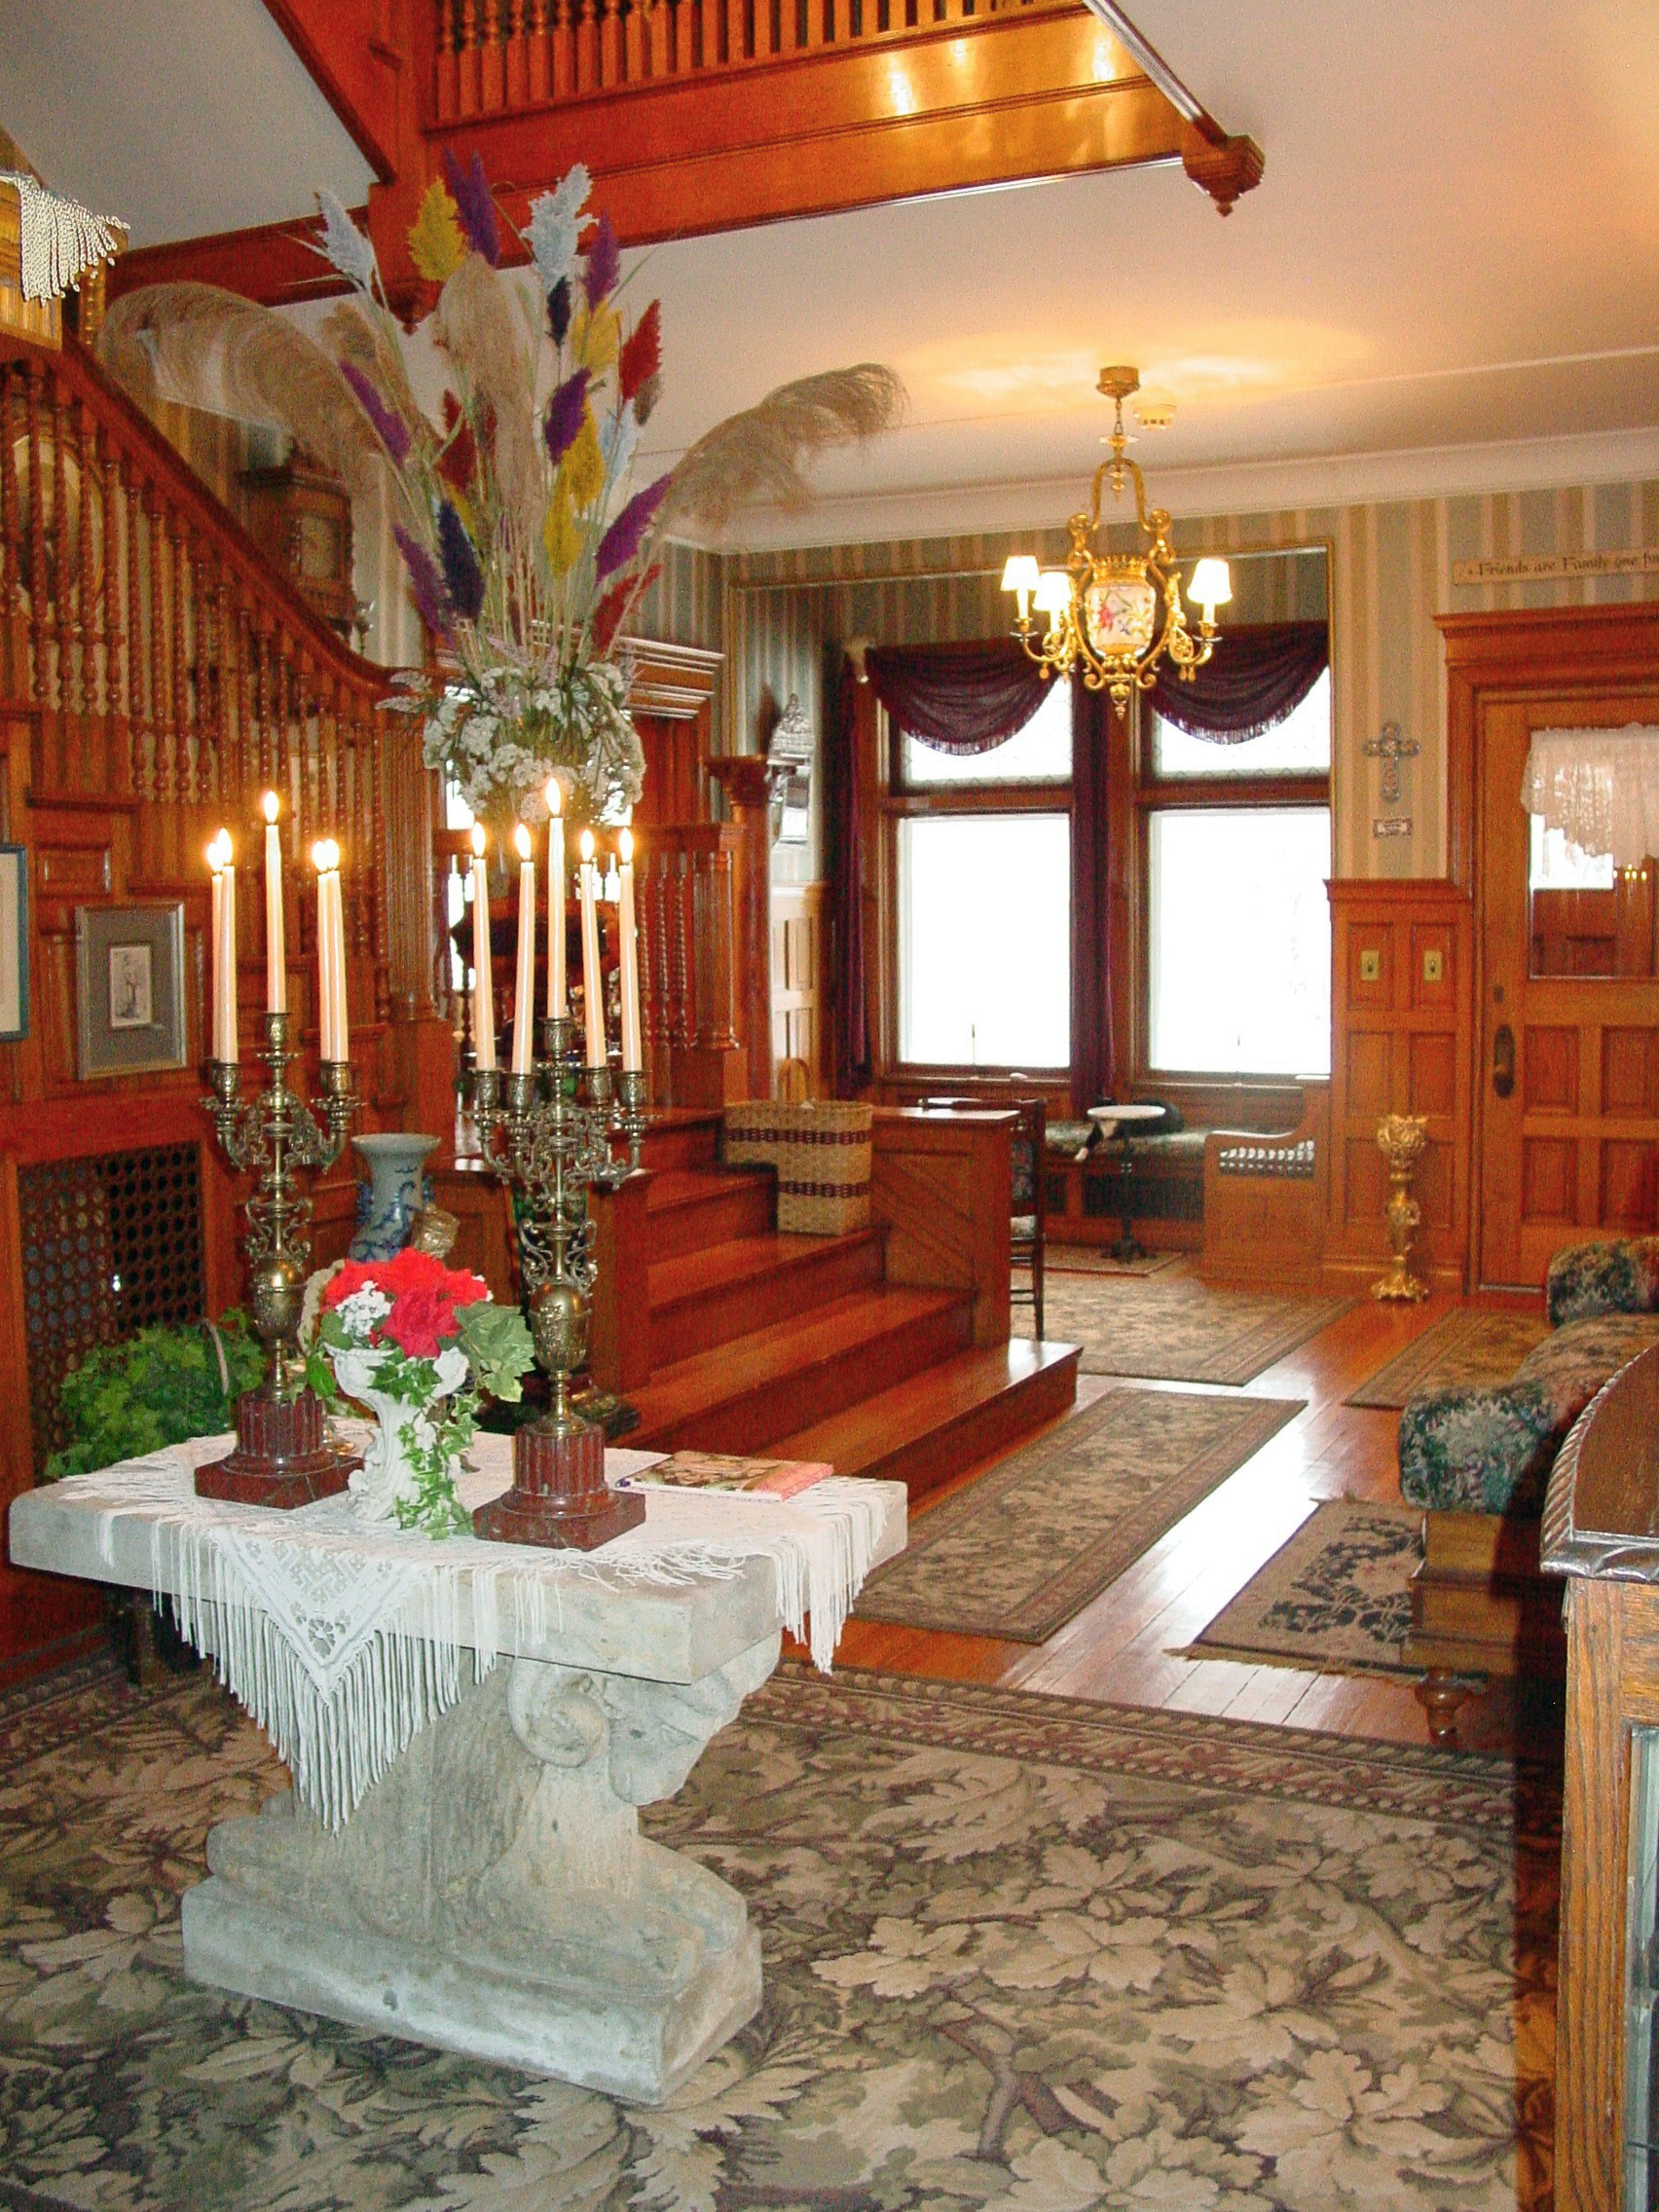 A View of the Grand Foyer